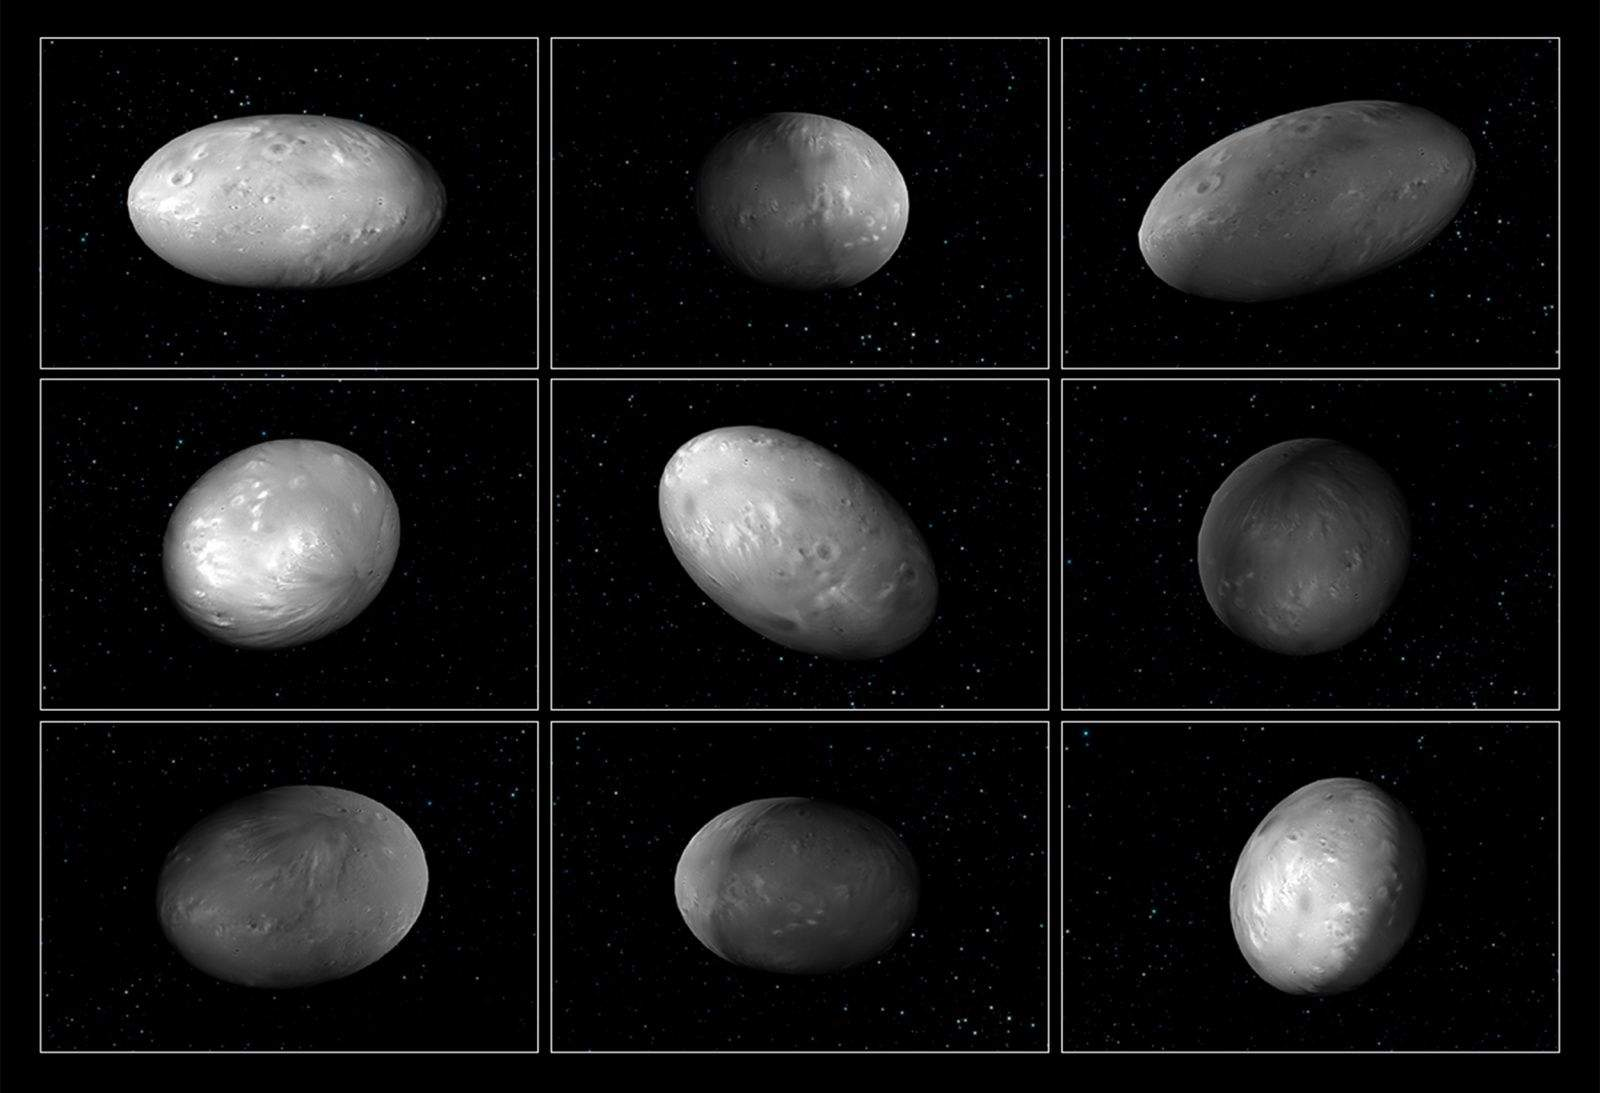 An artist's rendering shows the wobbble and oblong shape of Pluto's moon, Nix.